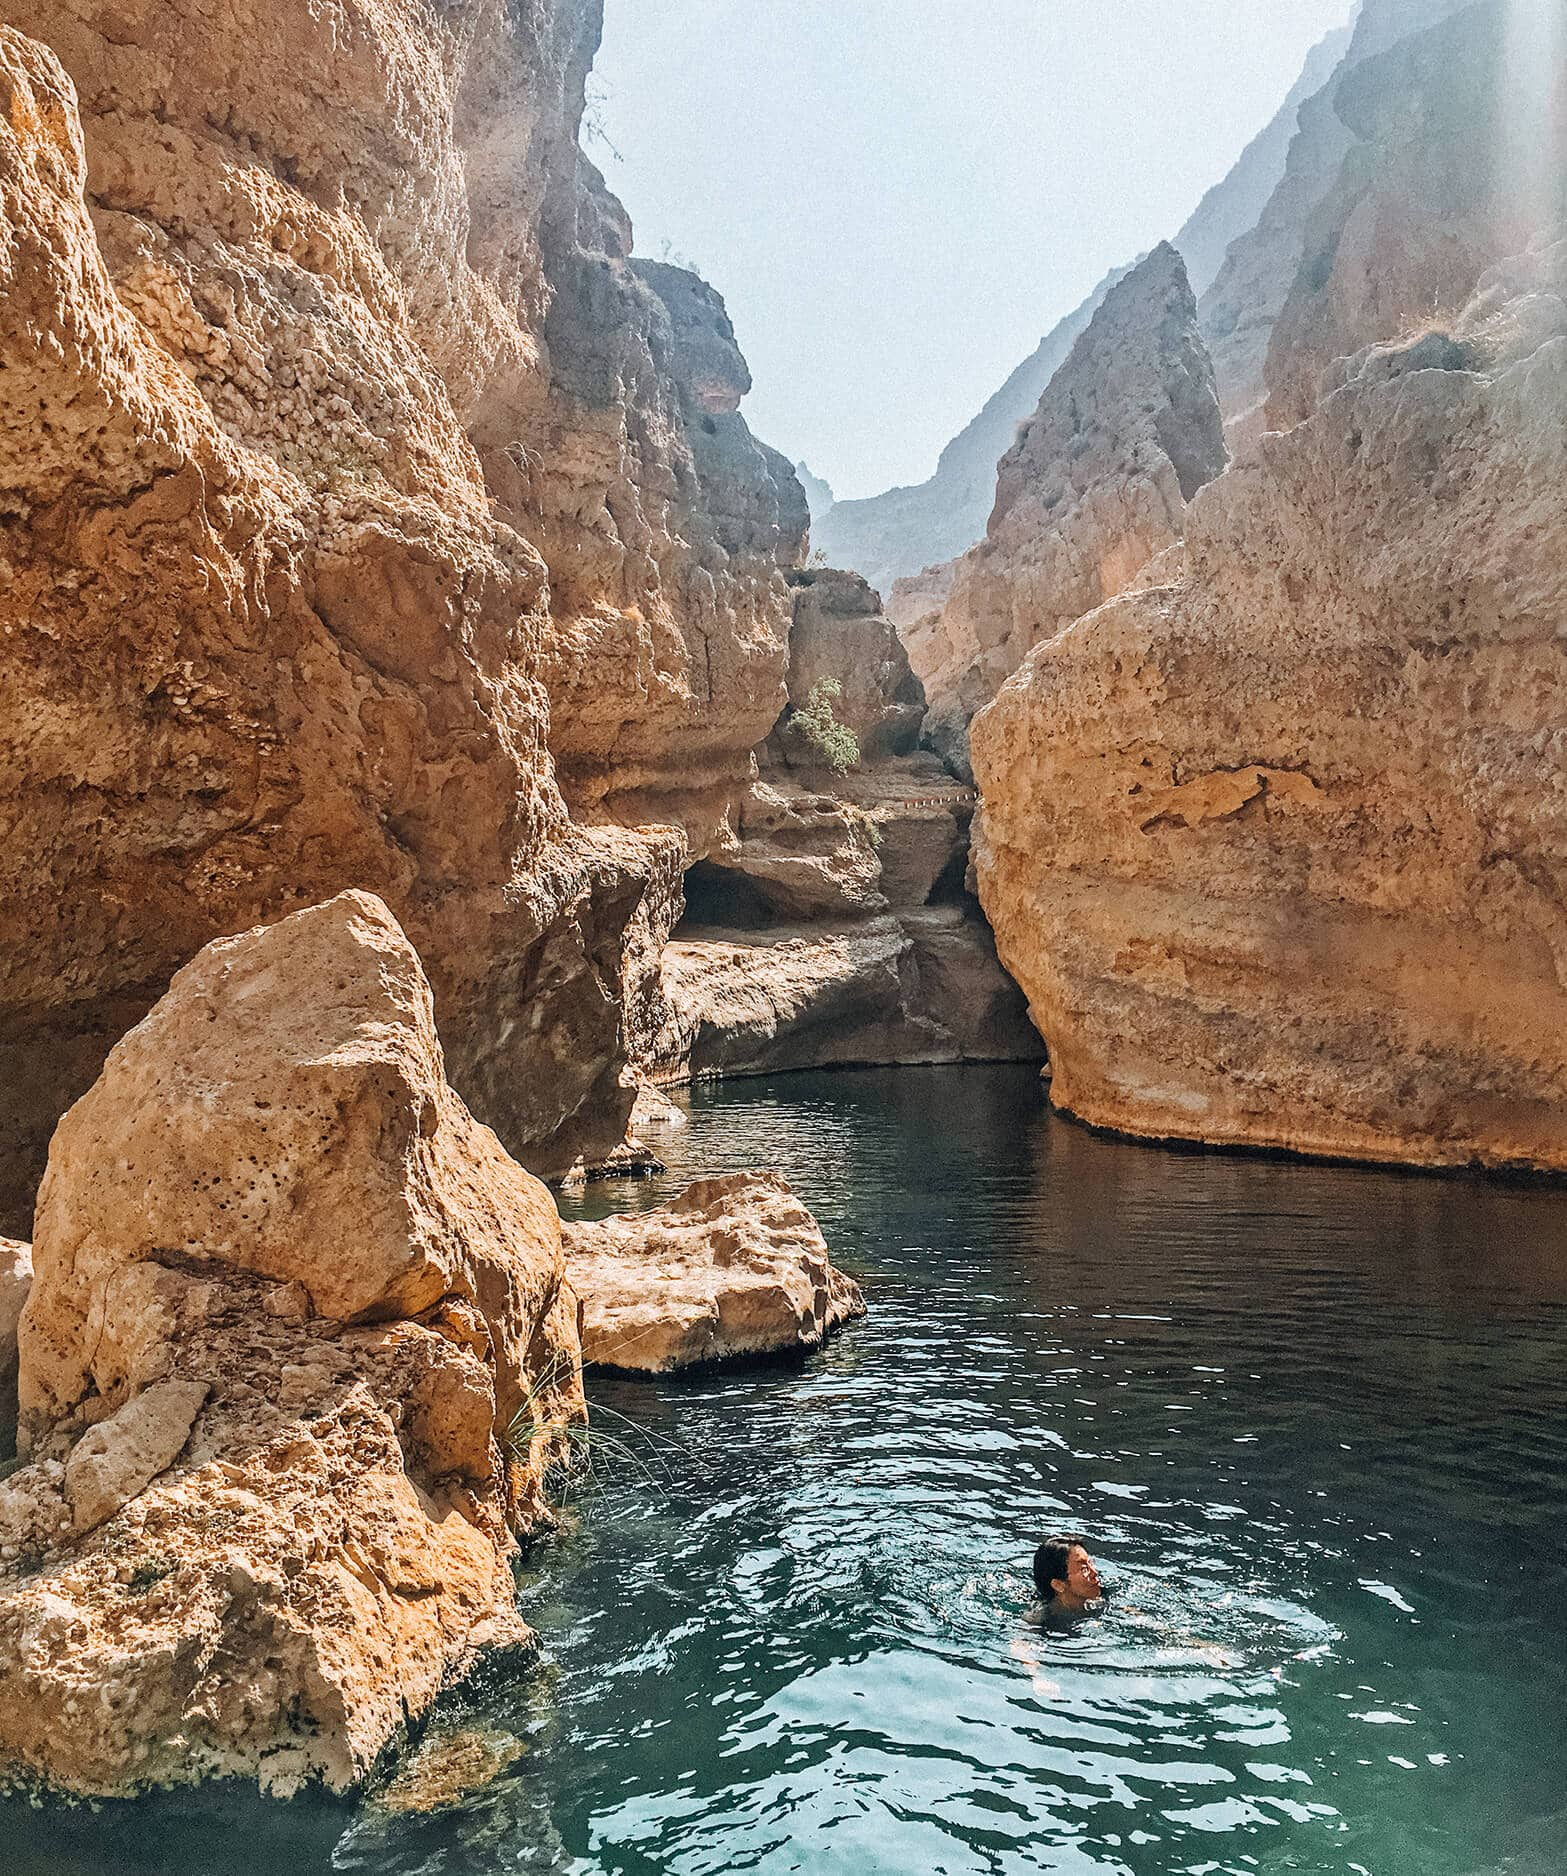 Travel bloggers reveal their favorite experiences in the world - Swimming in the wadis of Oman